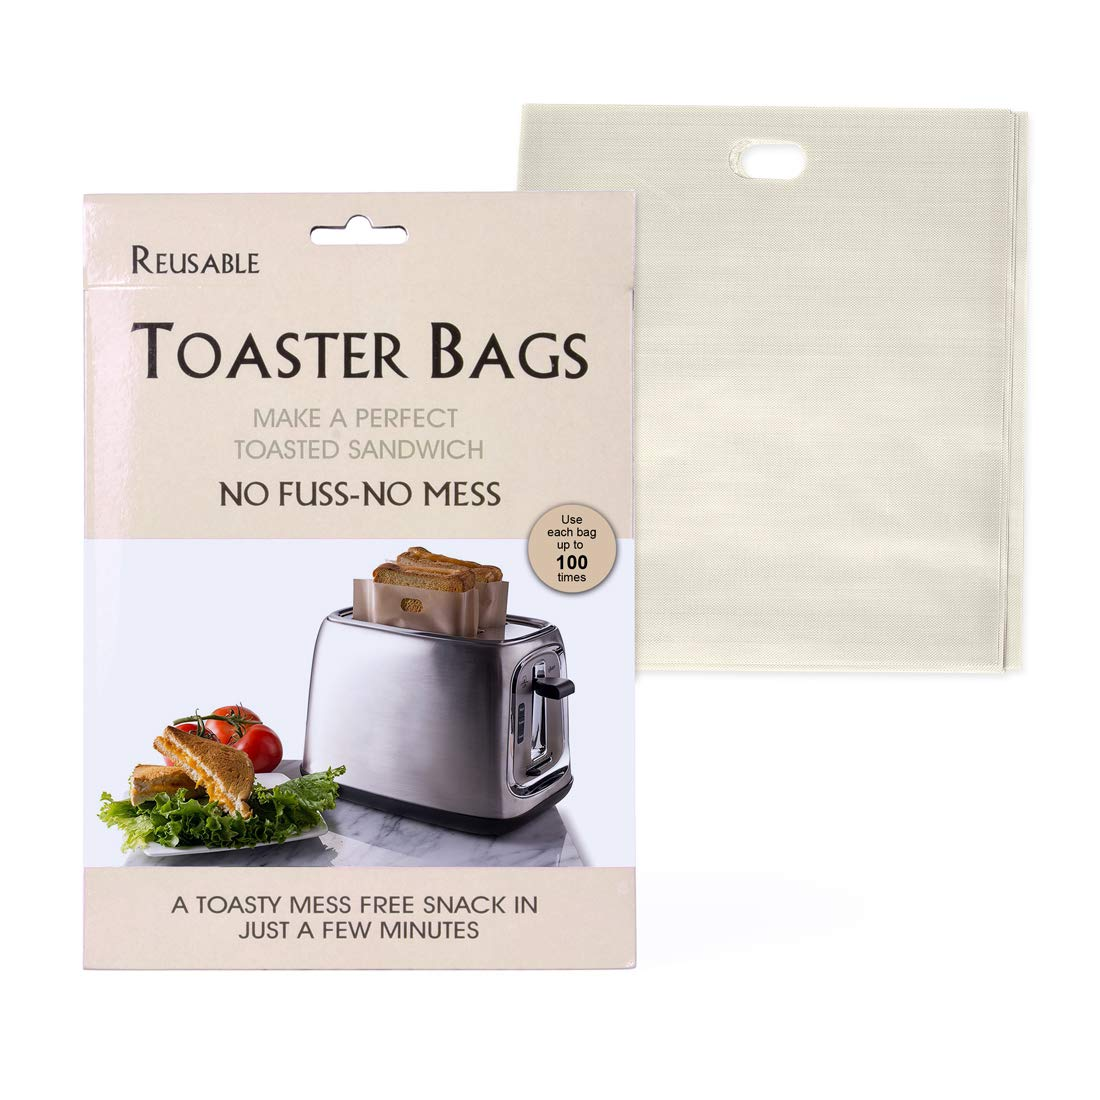 Ankway Non Stick Toaster Bags (Set of 6) Reusable Sandwiches Grilled Cheese Heat Resistant Microwave Oven Toaster Bags Pizza Panini & Garlic Easy to Clean